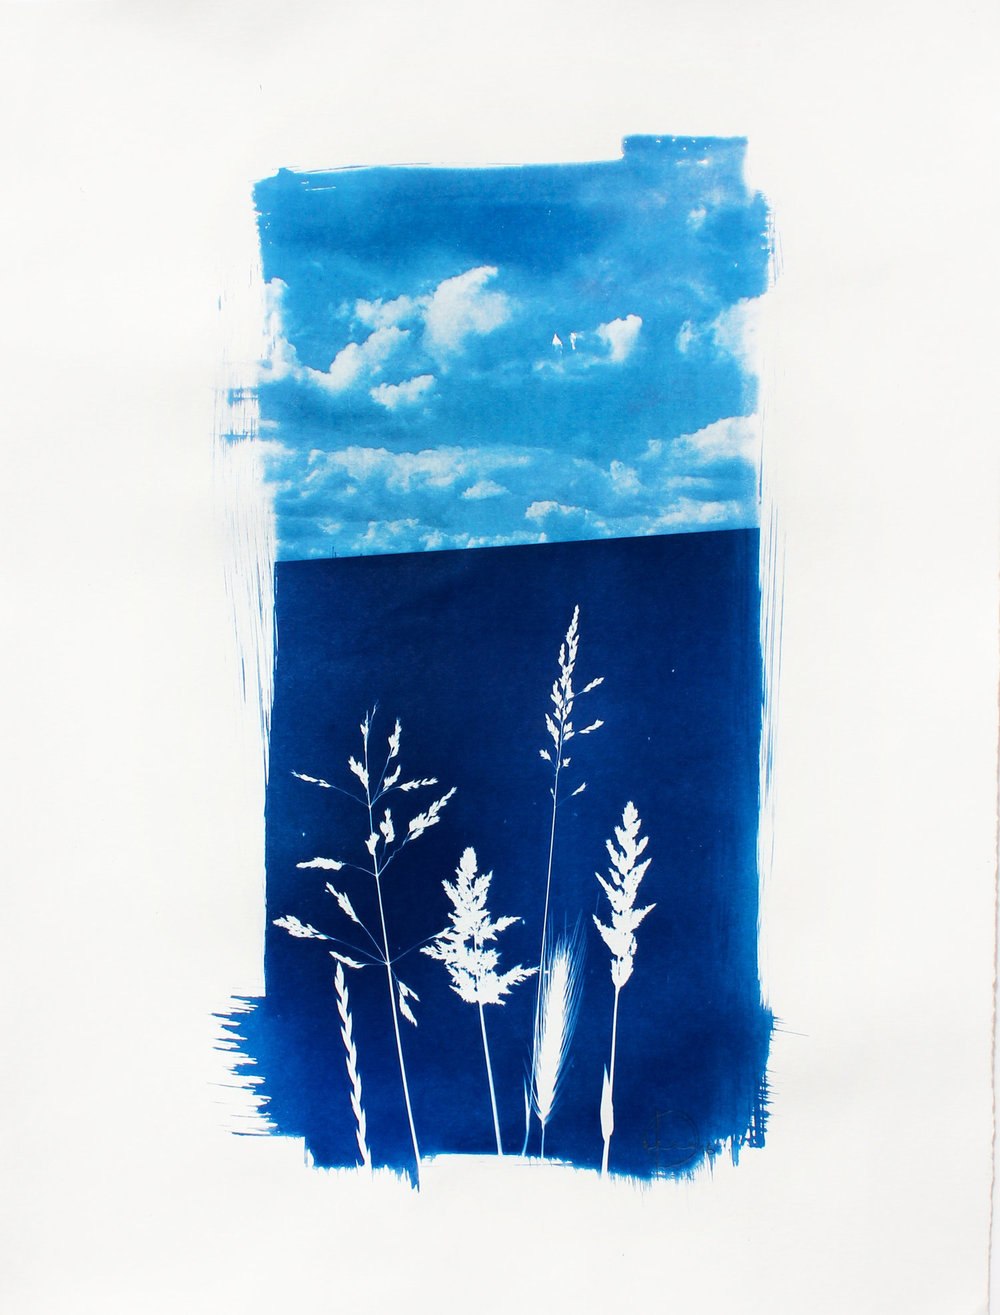 Contact Negative Craig Keenan 55cm x 66cm  Cyanotype One Off For more info on the piece click here